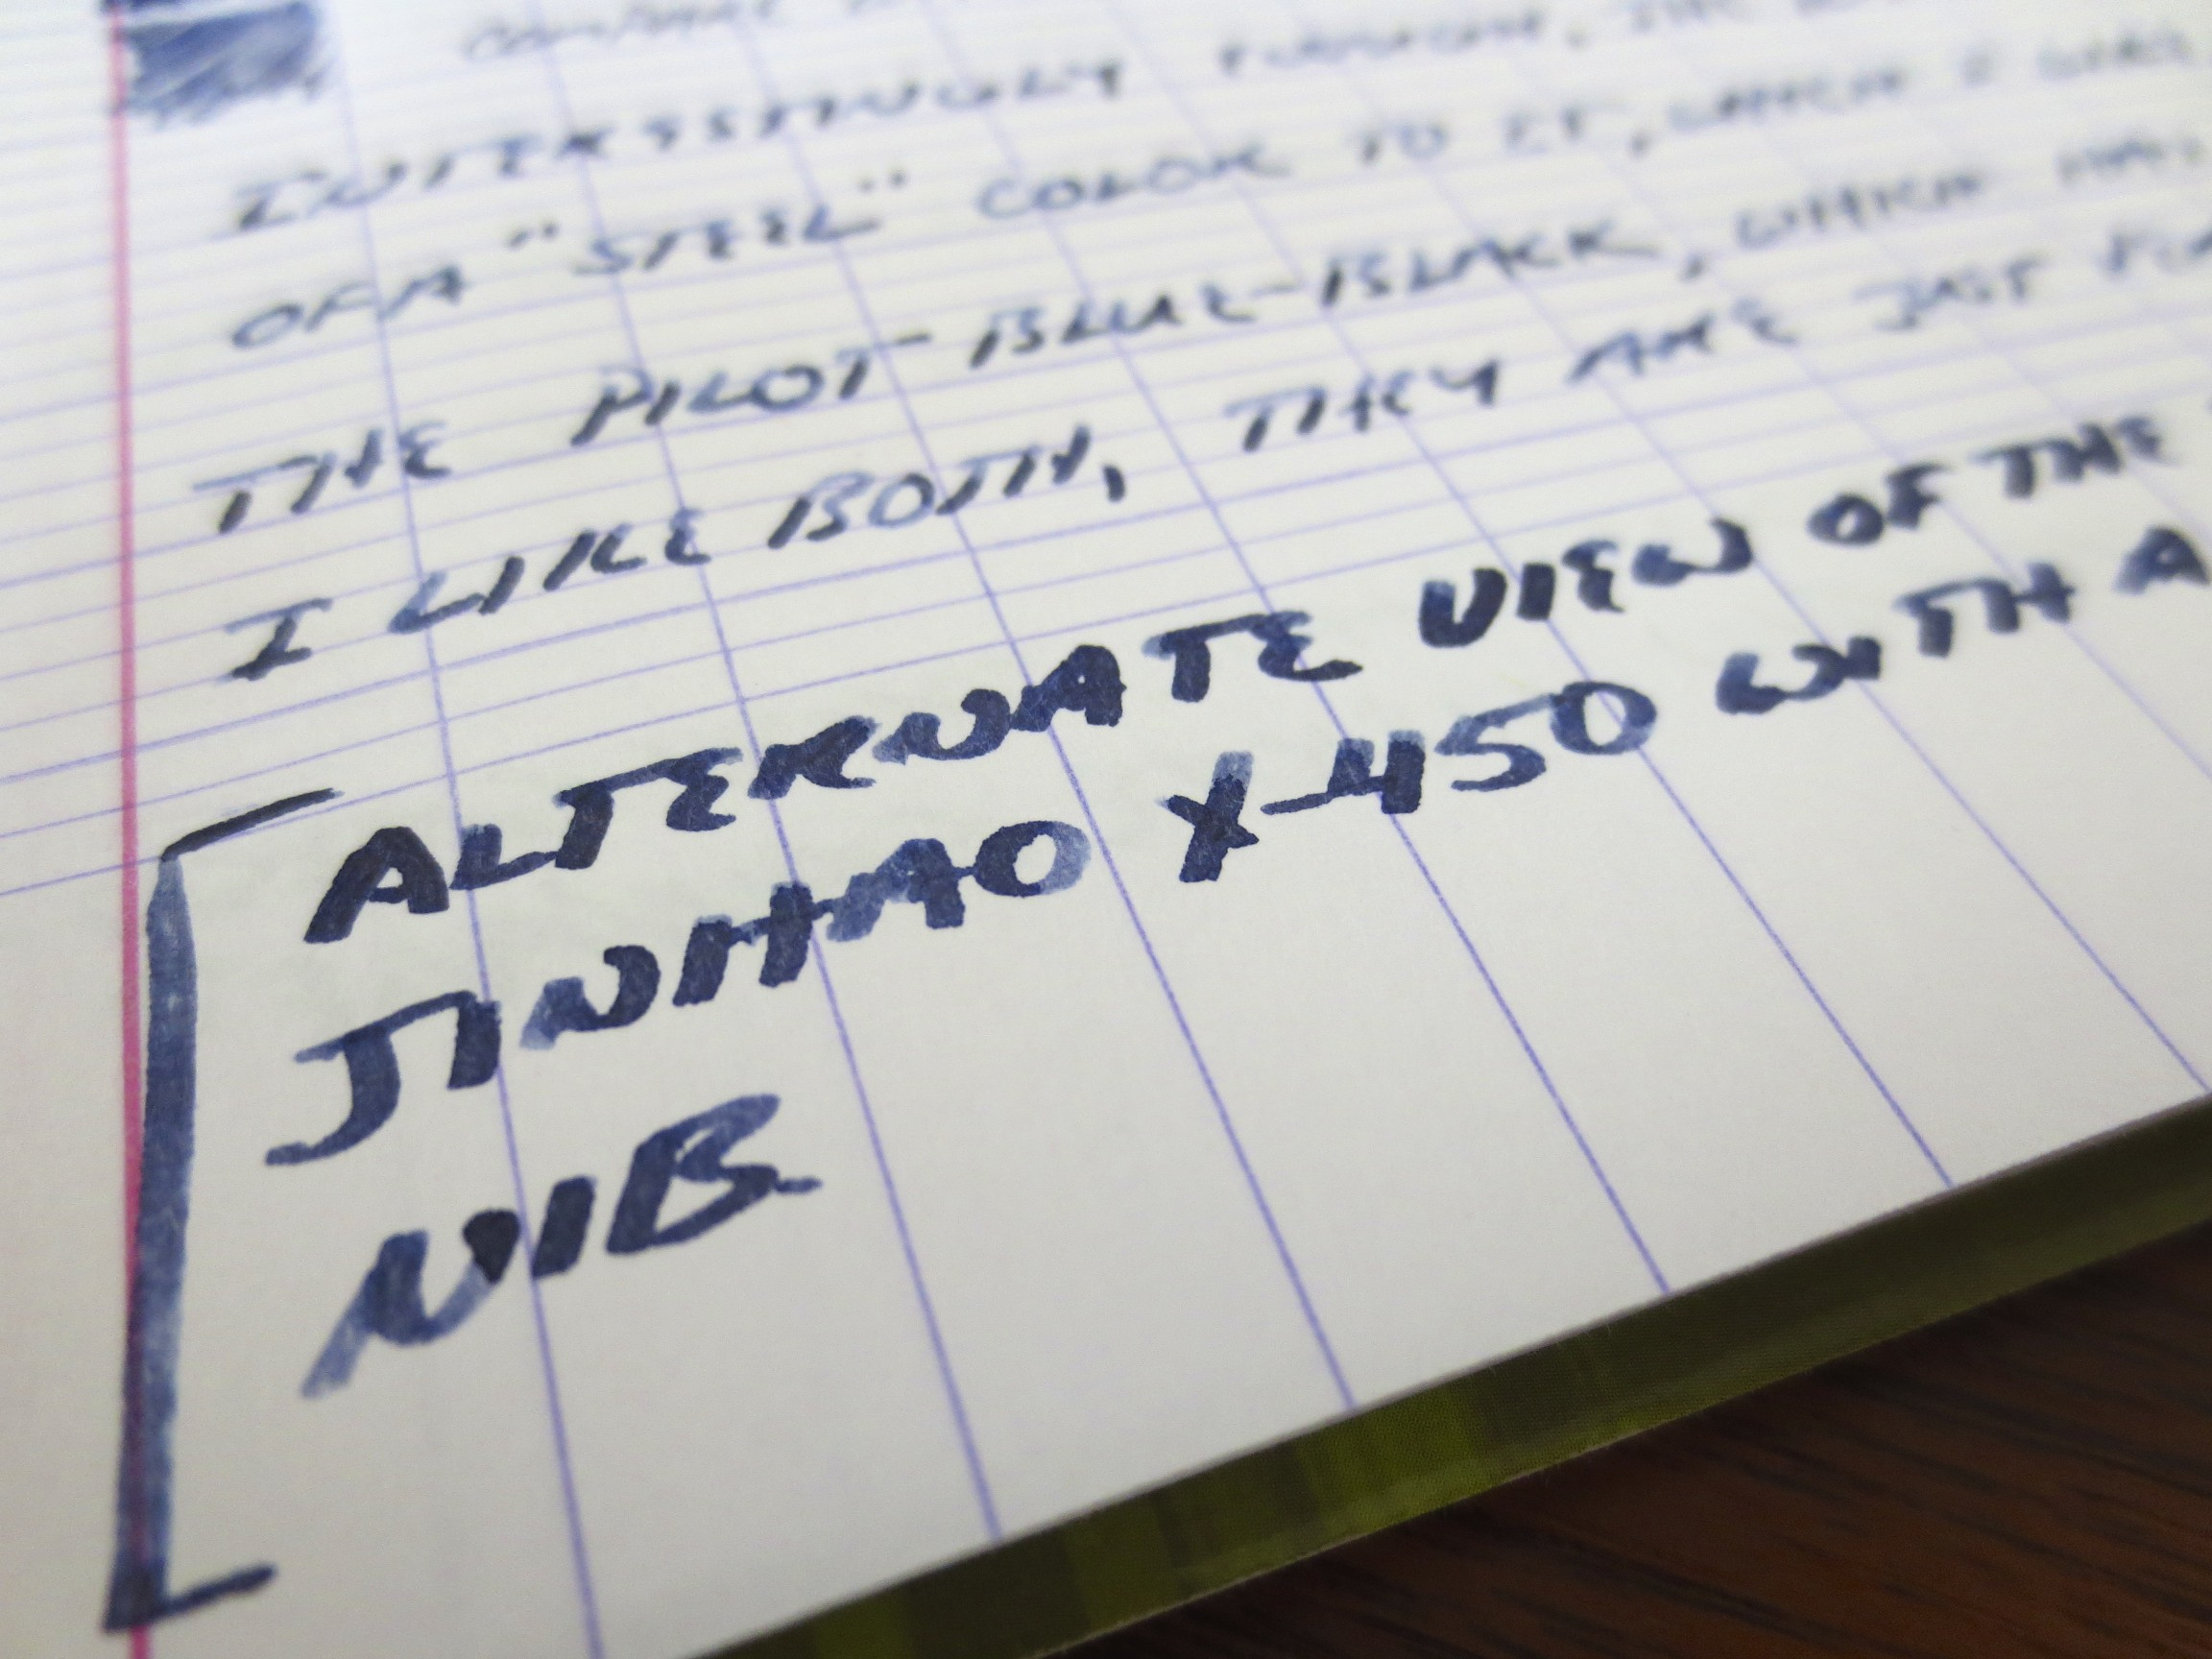 Here's the stub writing sample in close-up, using the previously reviewed Jinhao X-450.